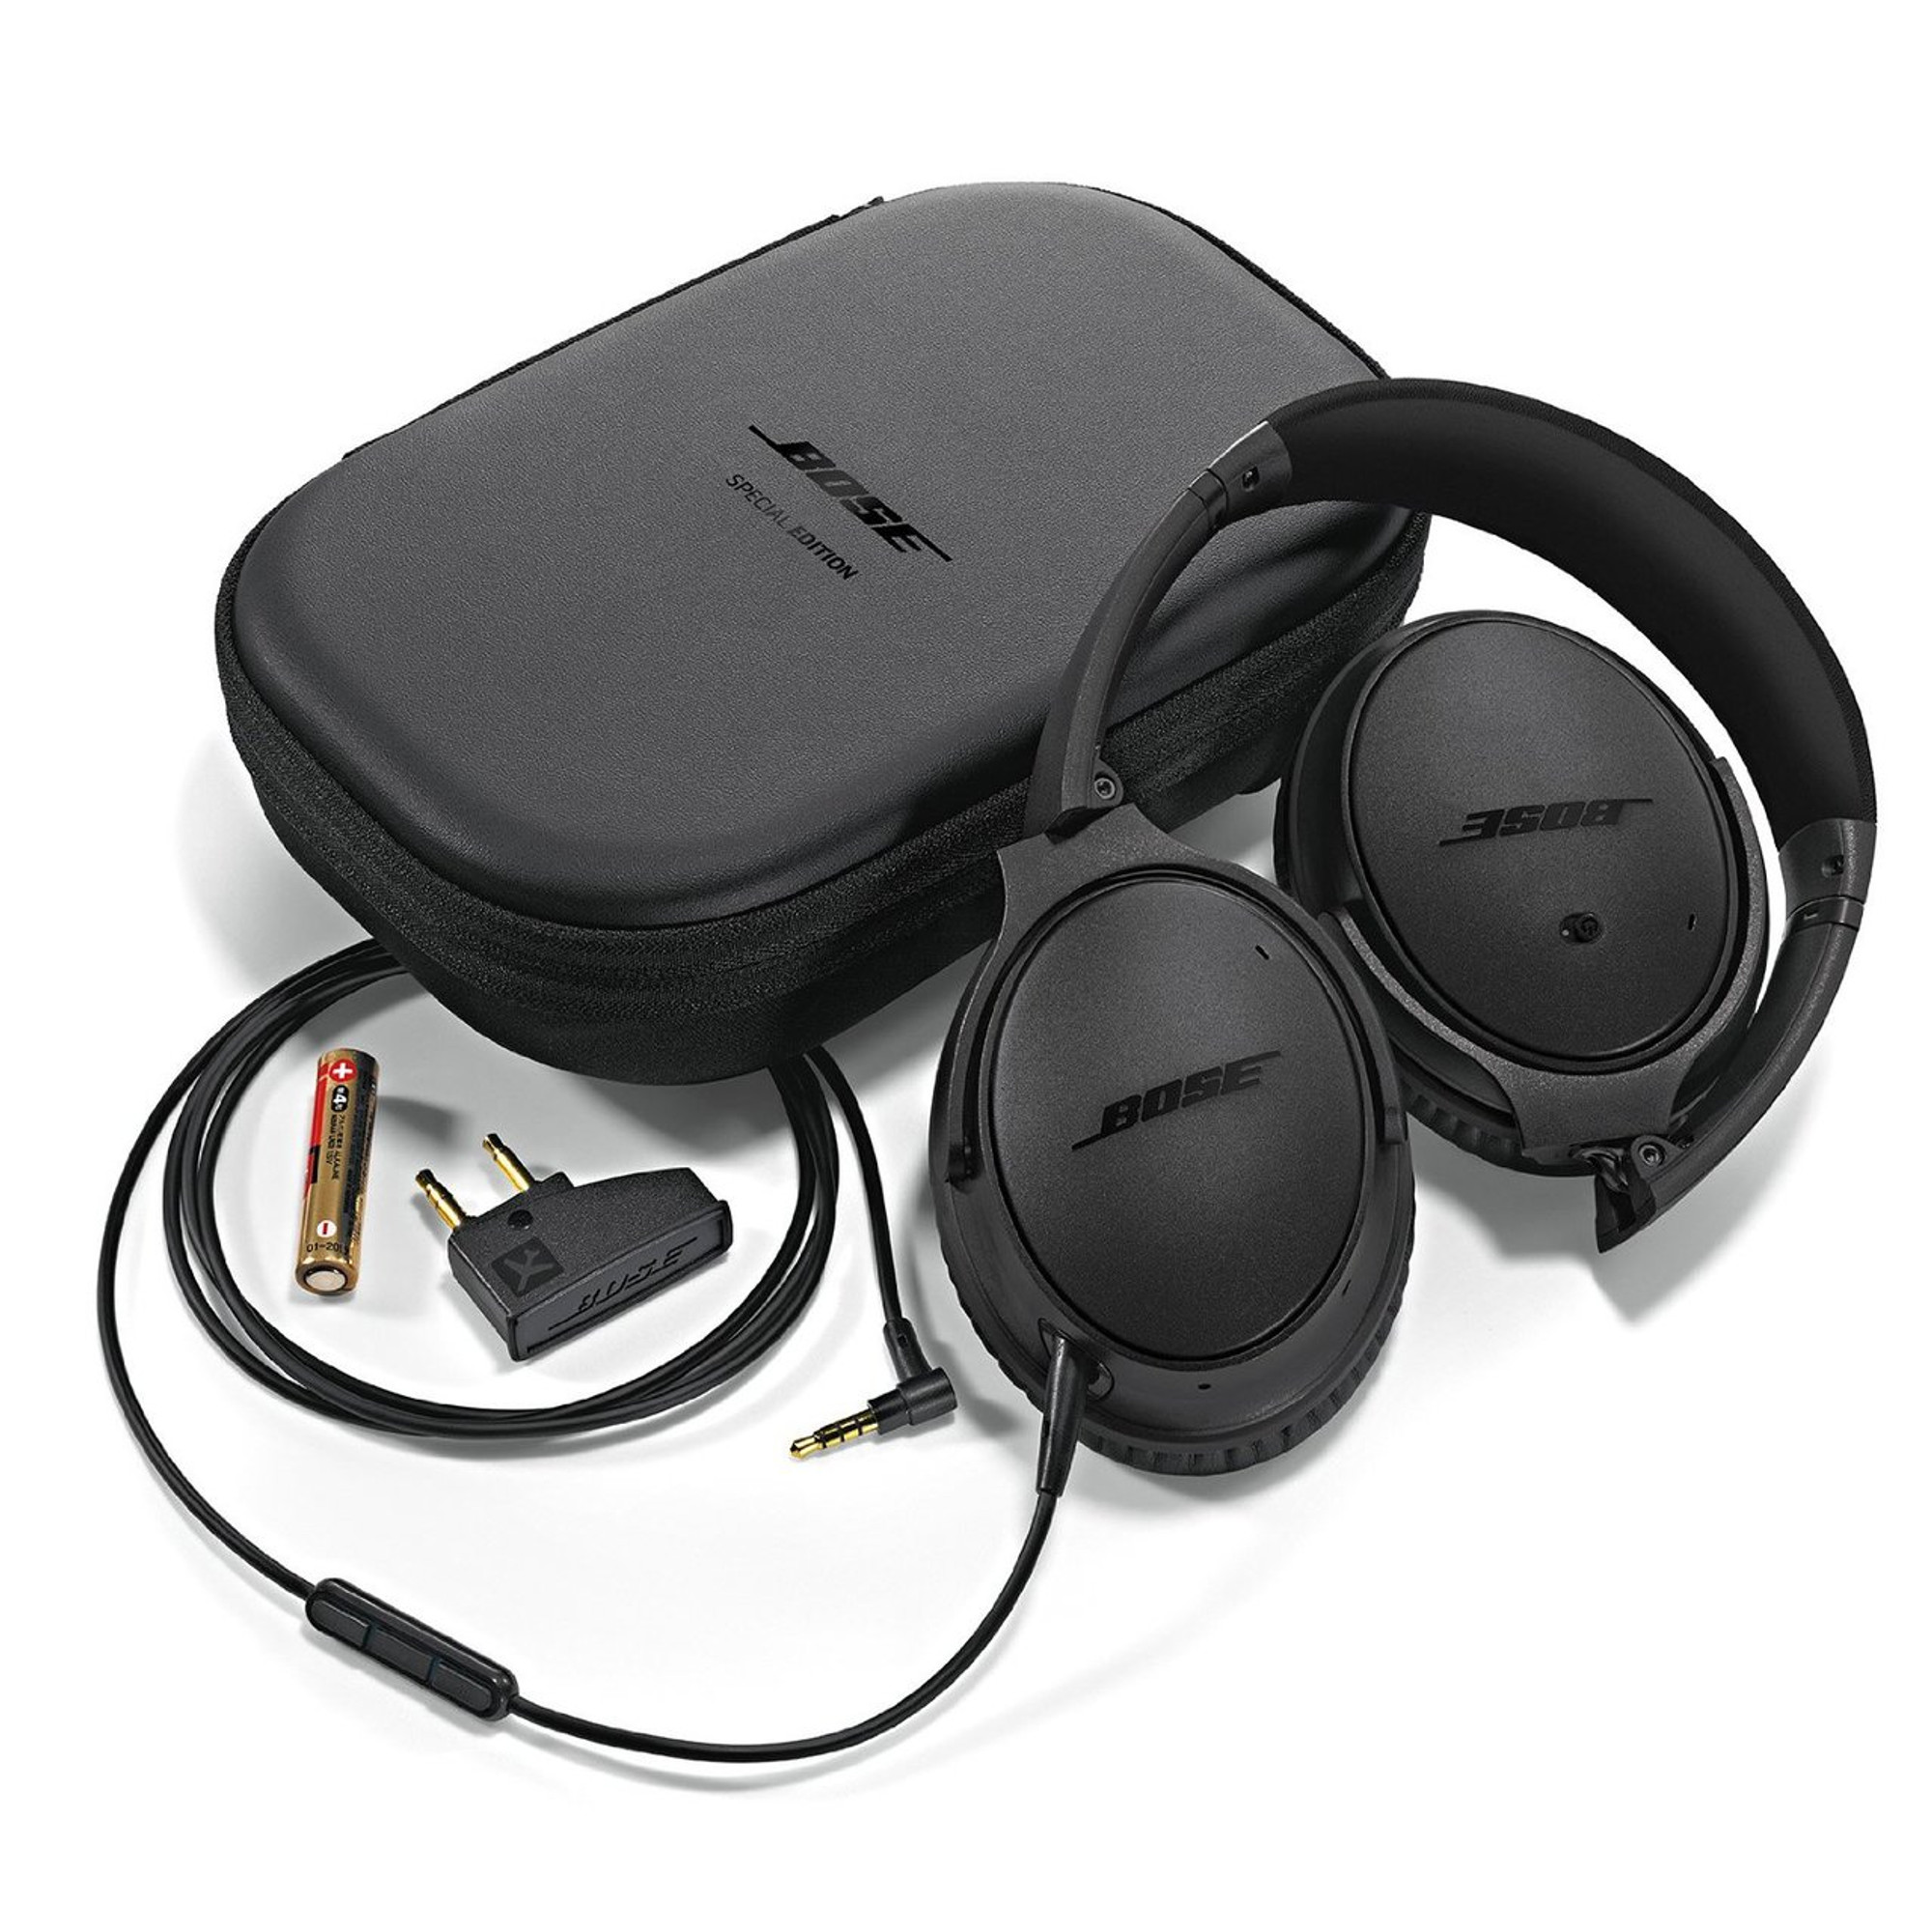 7803acfe532 Bose QuietComfort 25 Noise Cancelling Headphones For Apple Devices (Triple  Black)